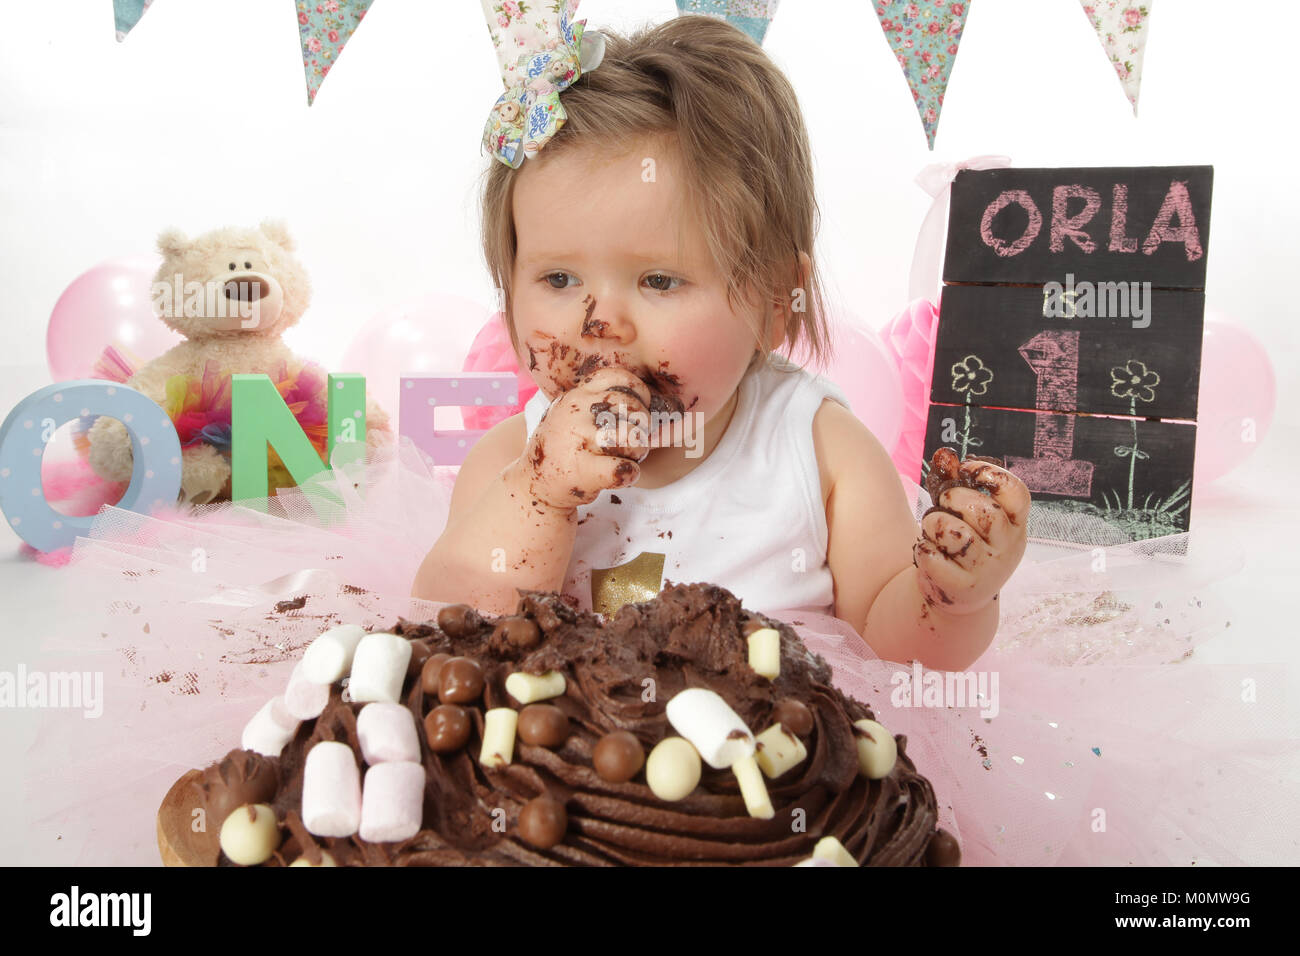 1 Year Old Girl Birthday Party Cake Smash Messy Chocolate